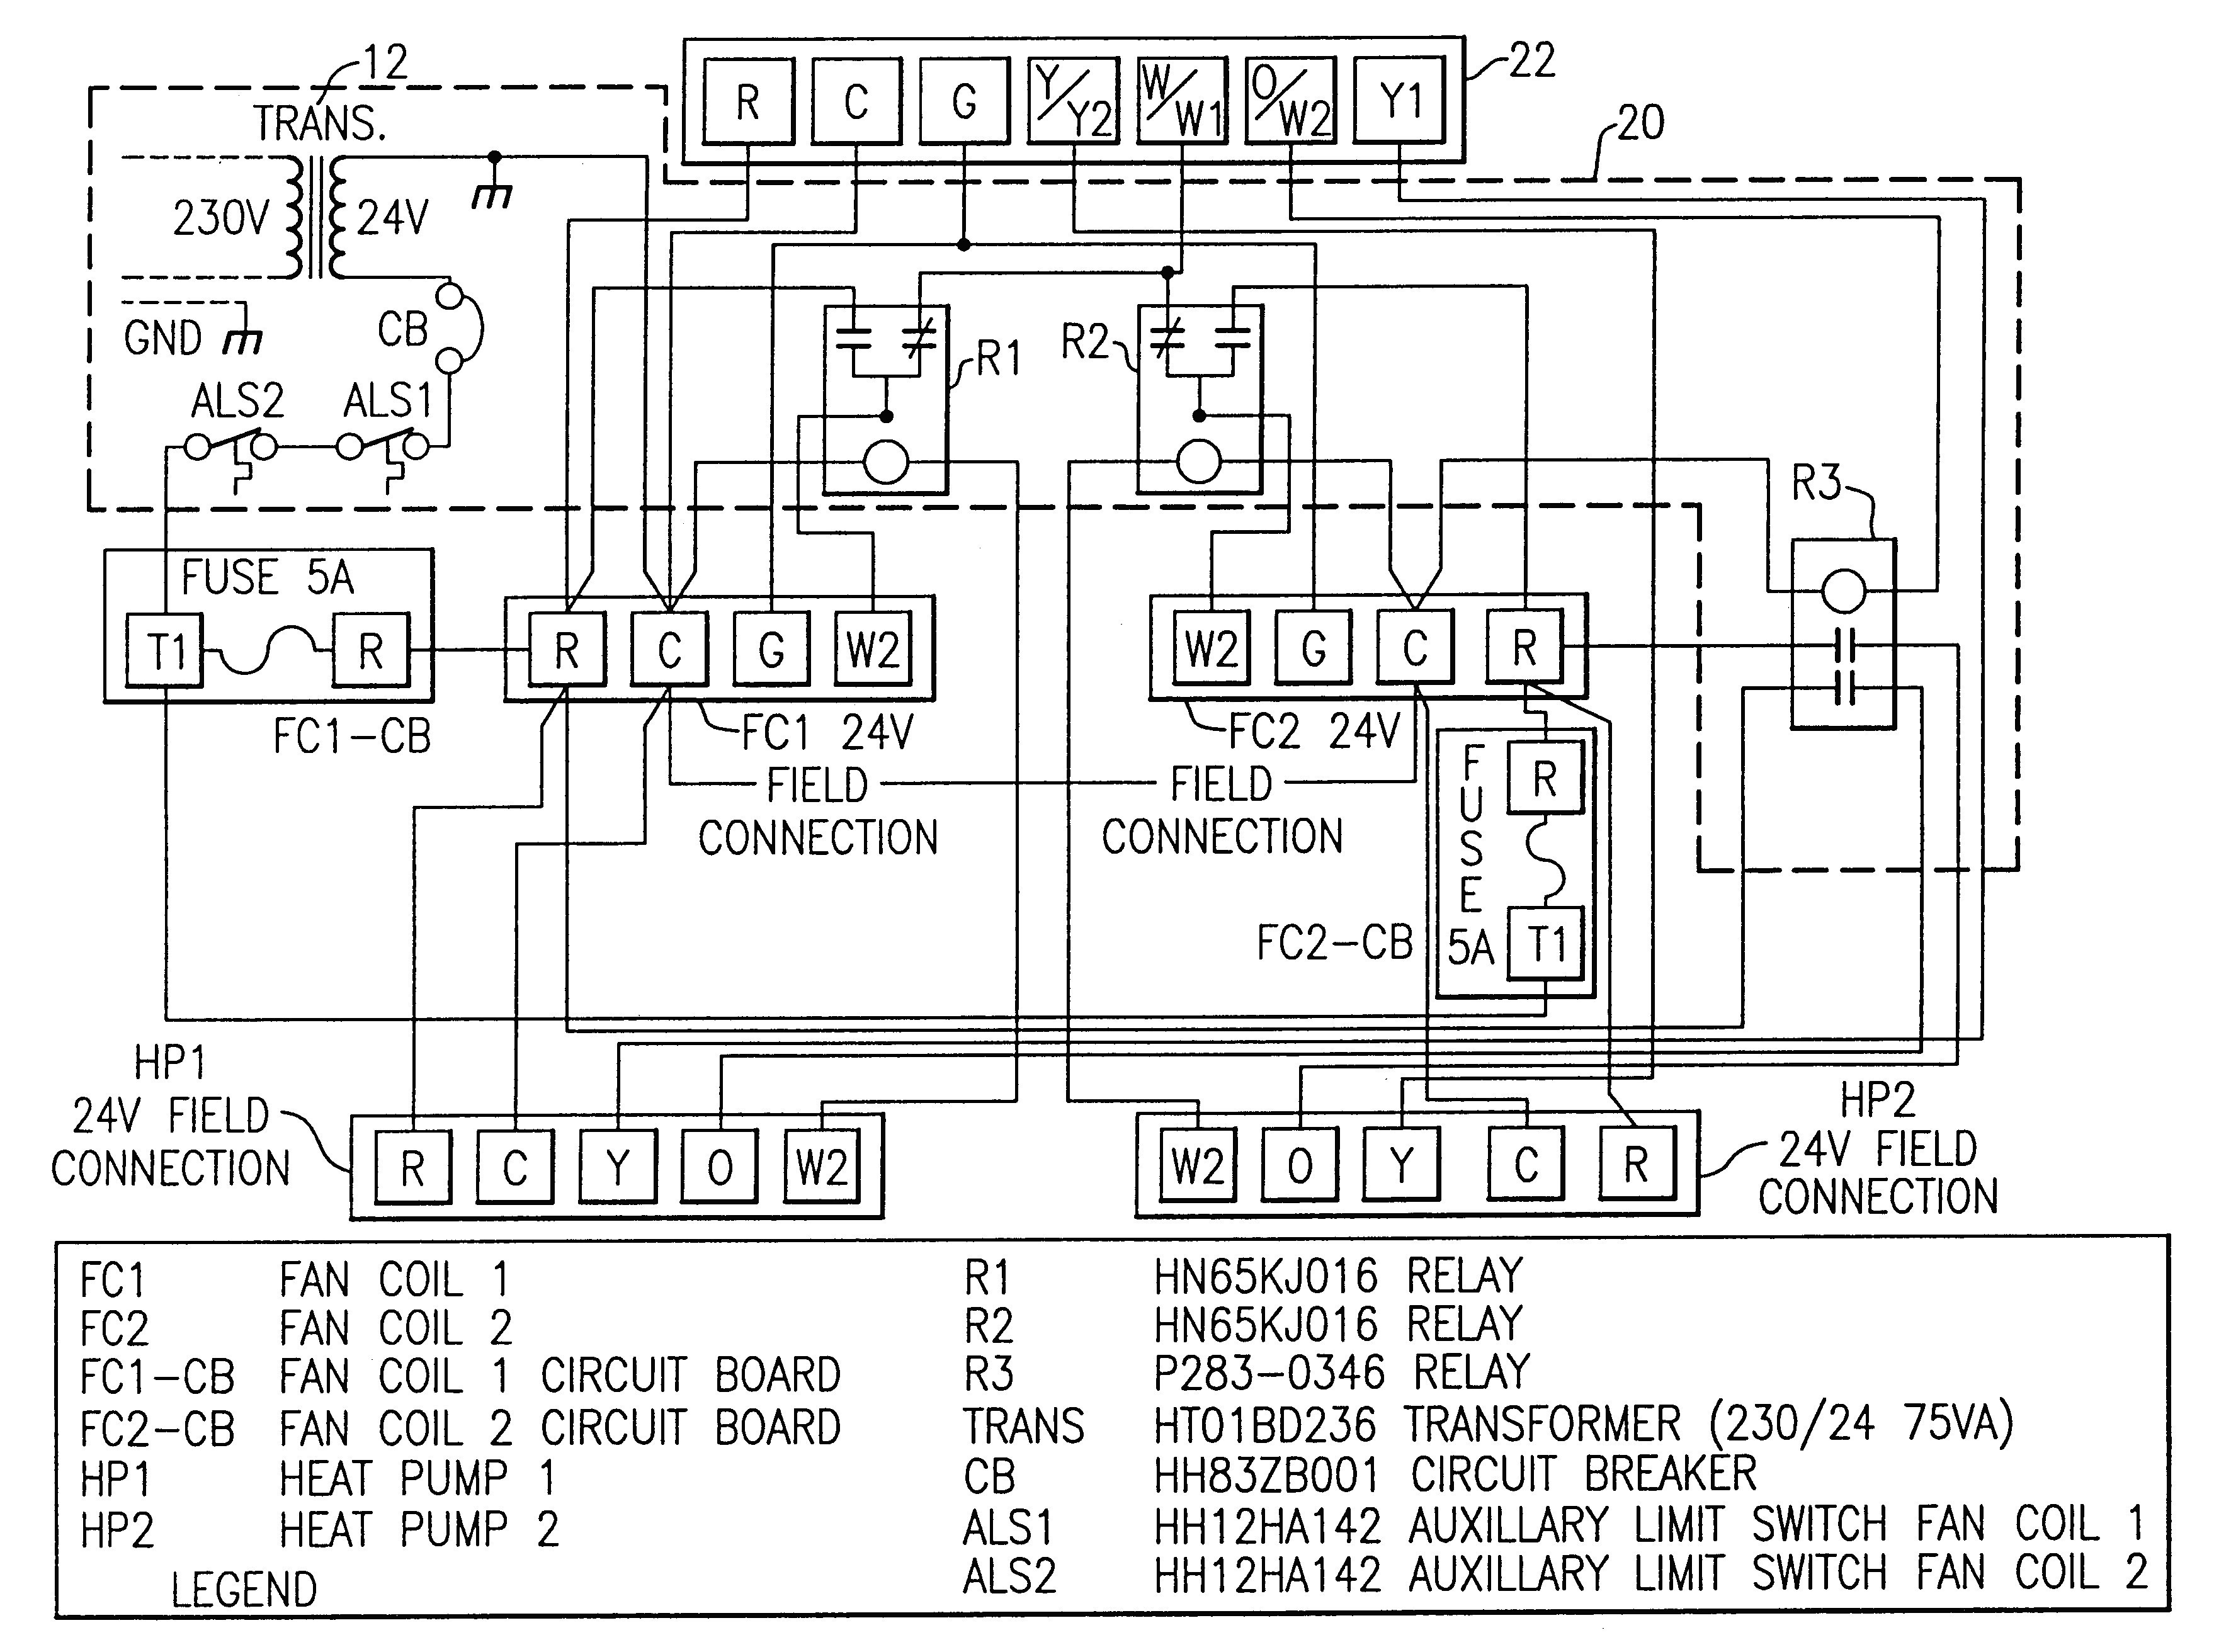 Aprilaire 600 Wiring Diagram Awesome 2 Wire thermostat Wiring Diagram Heat Ly S Of Aprilaire 600 Wiring Diagram